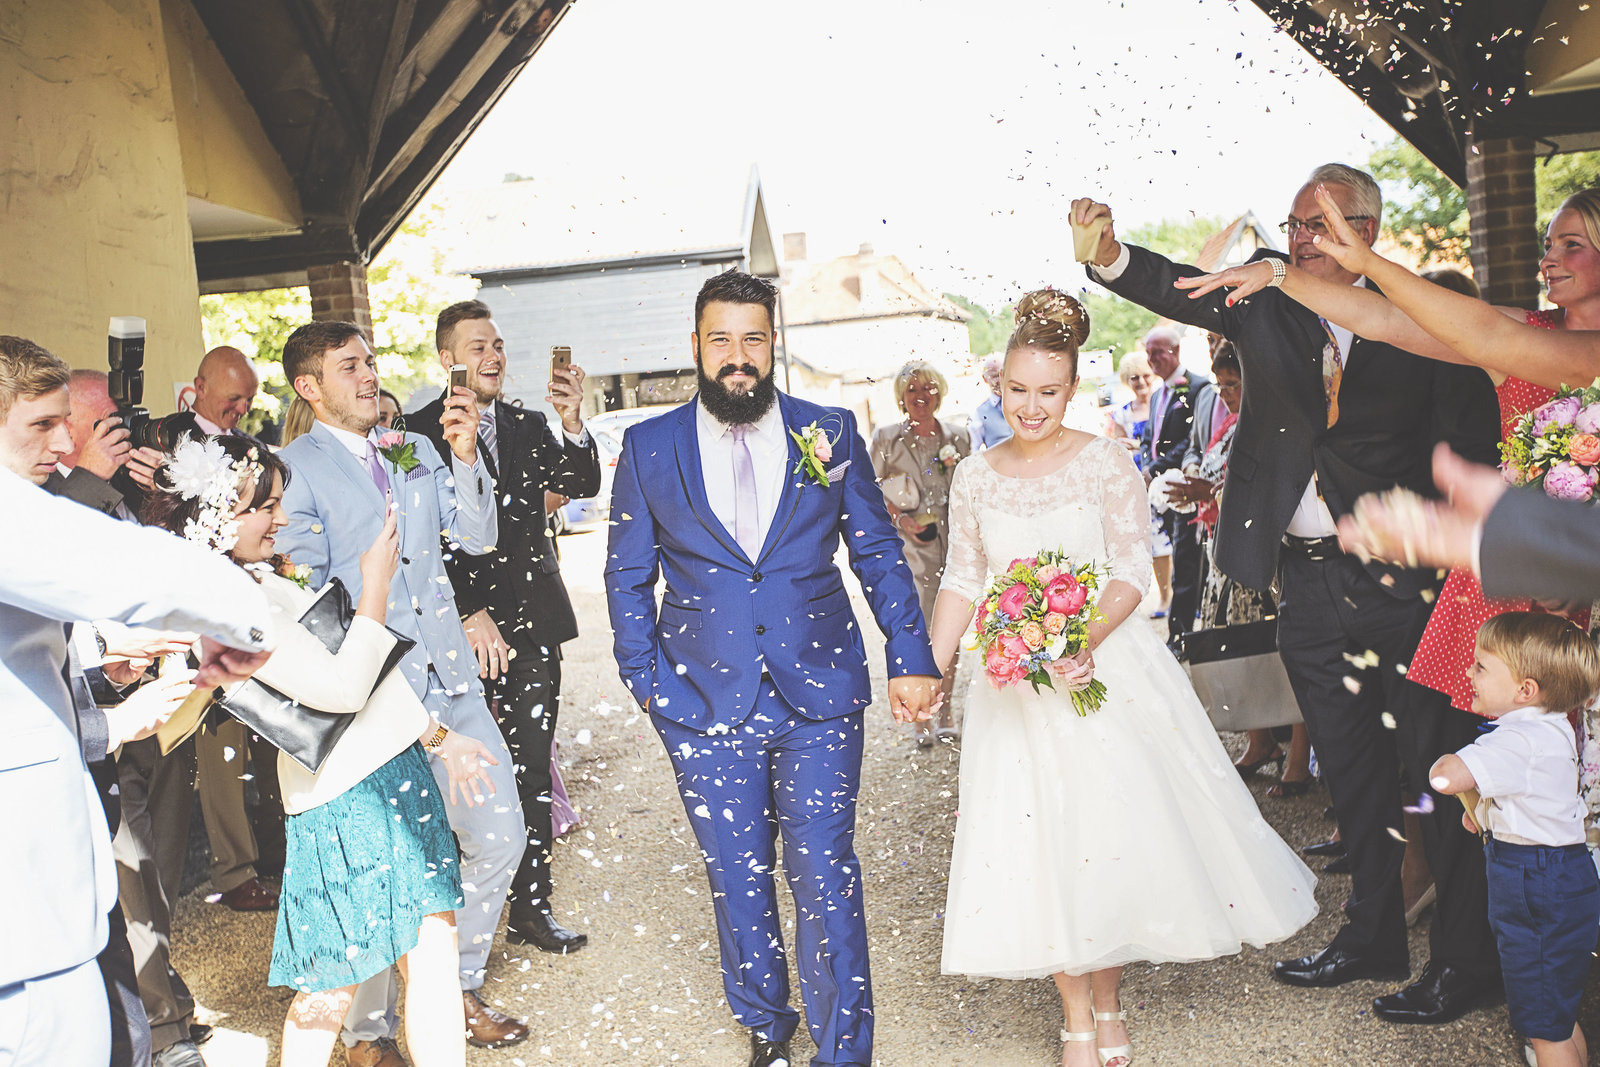 Norfolk bride and groom having their confetti moment at Norfolk venue